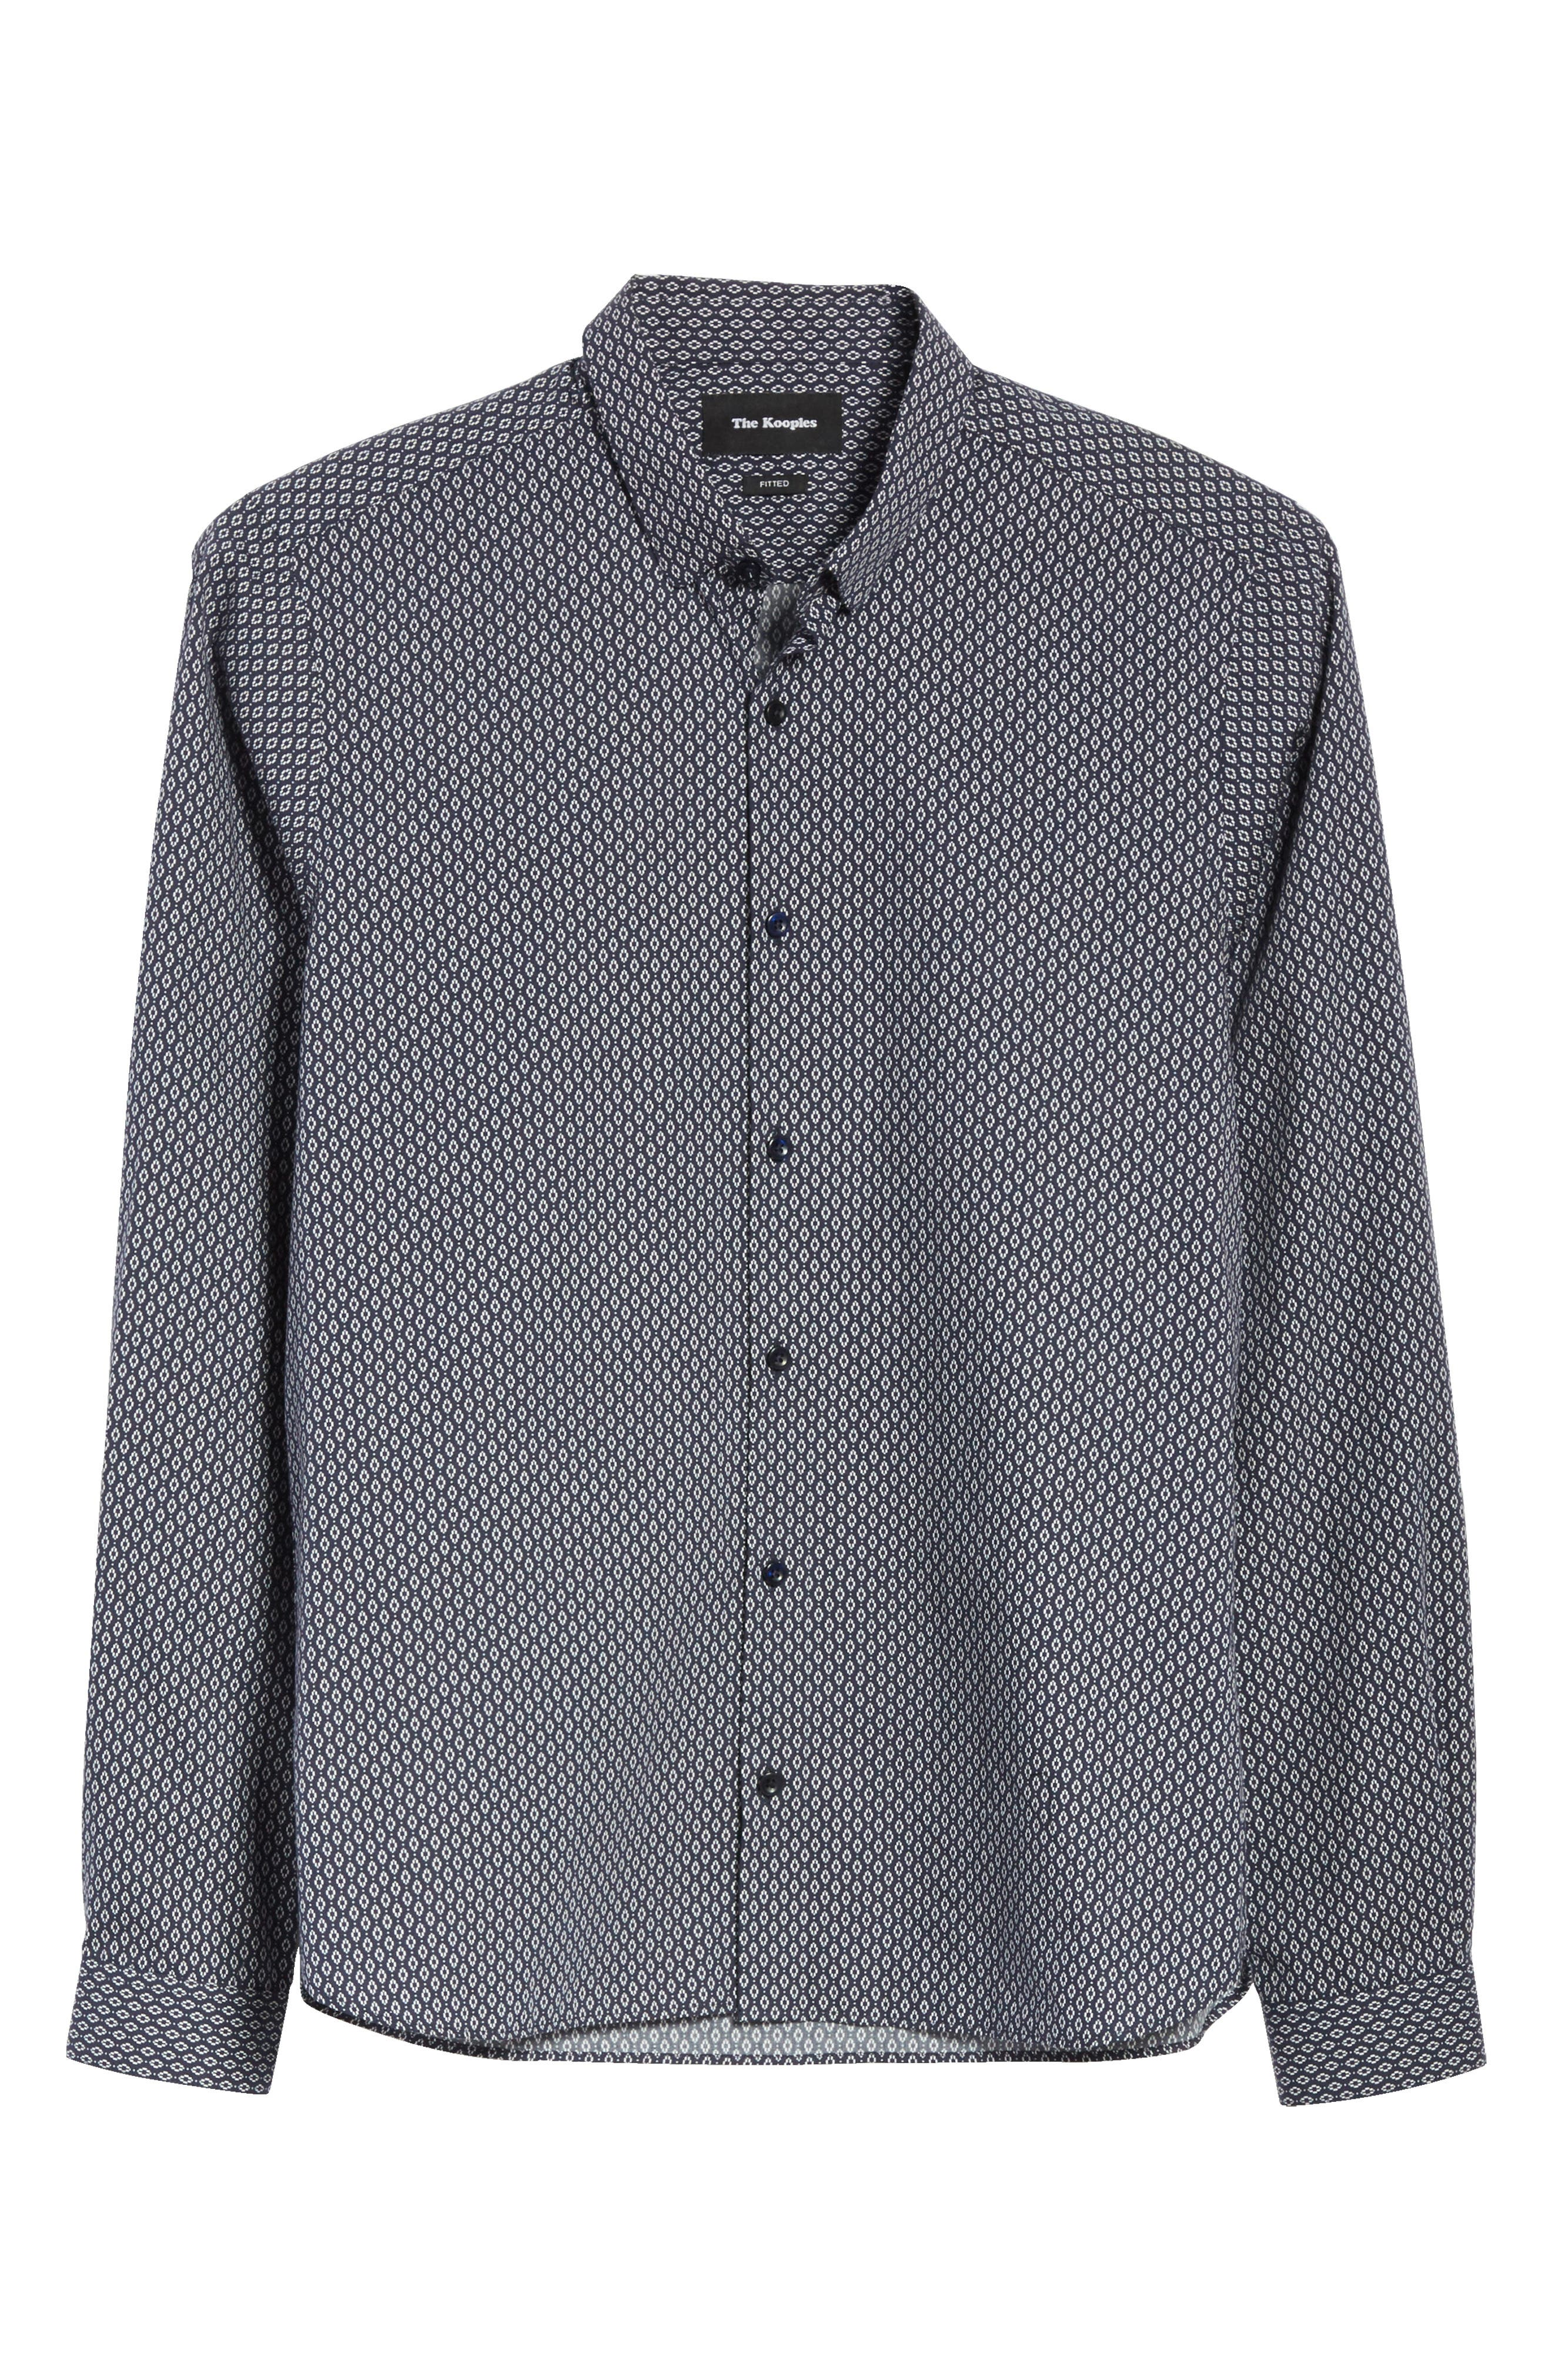 Alternate Image 6  - The Kooples Diamond Print Shirt